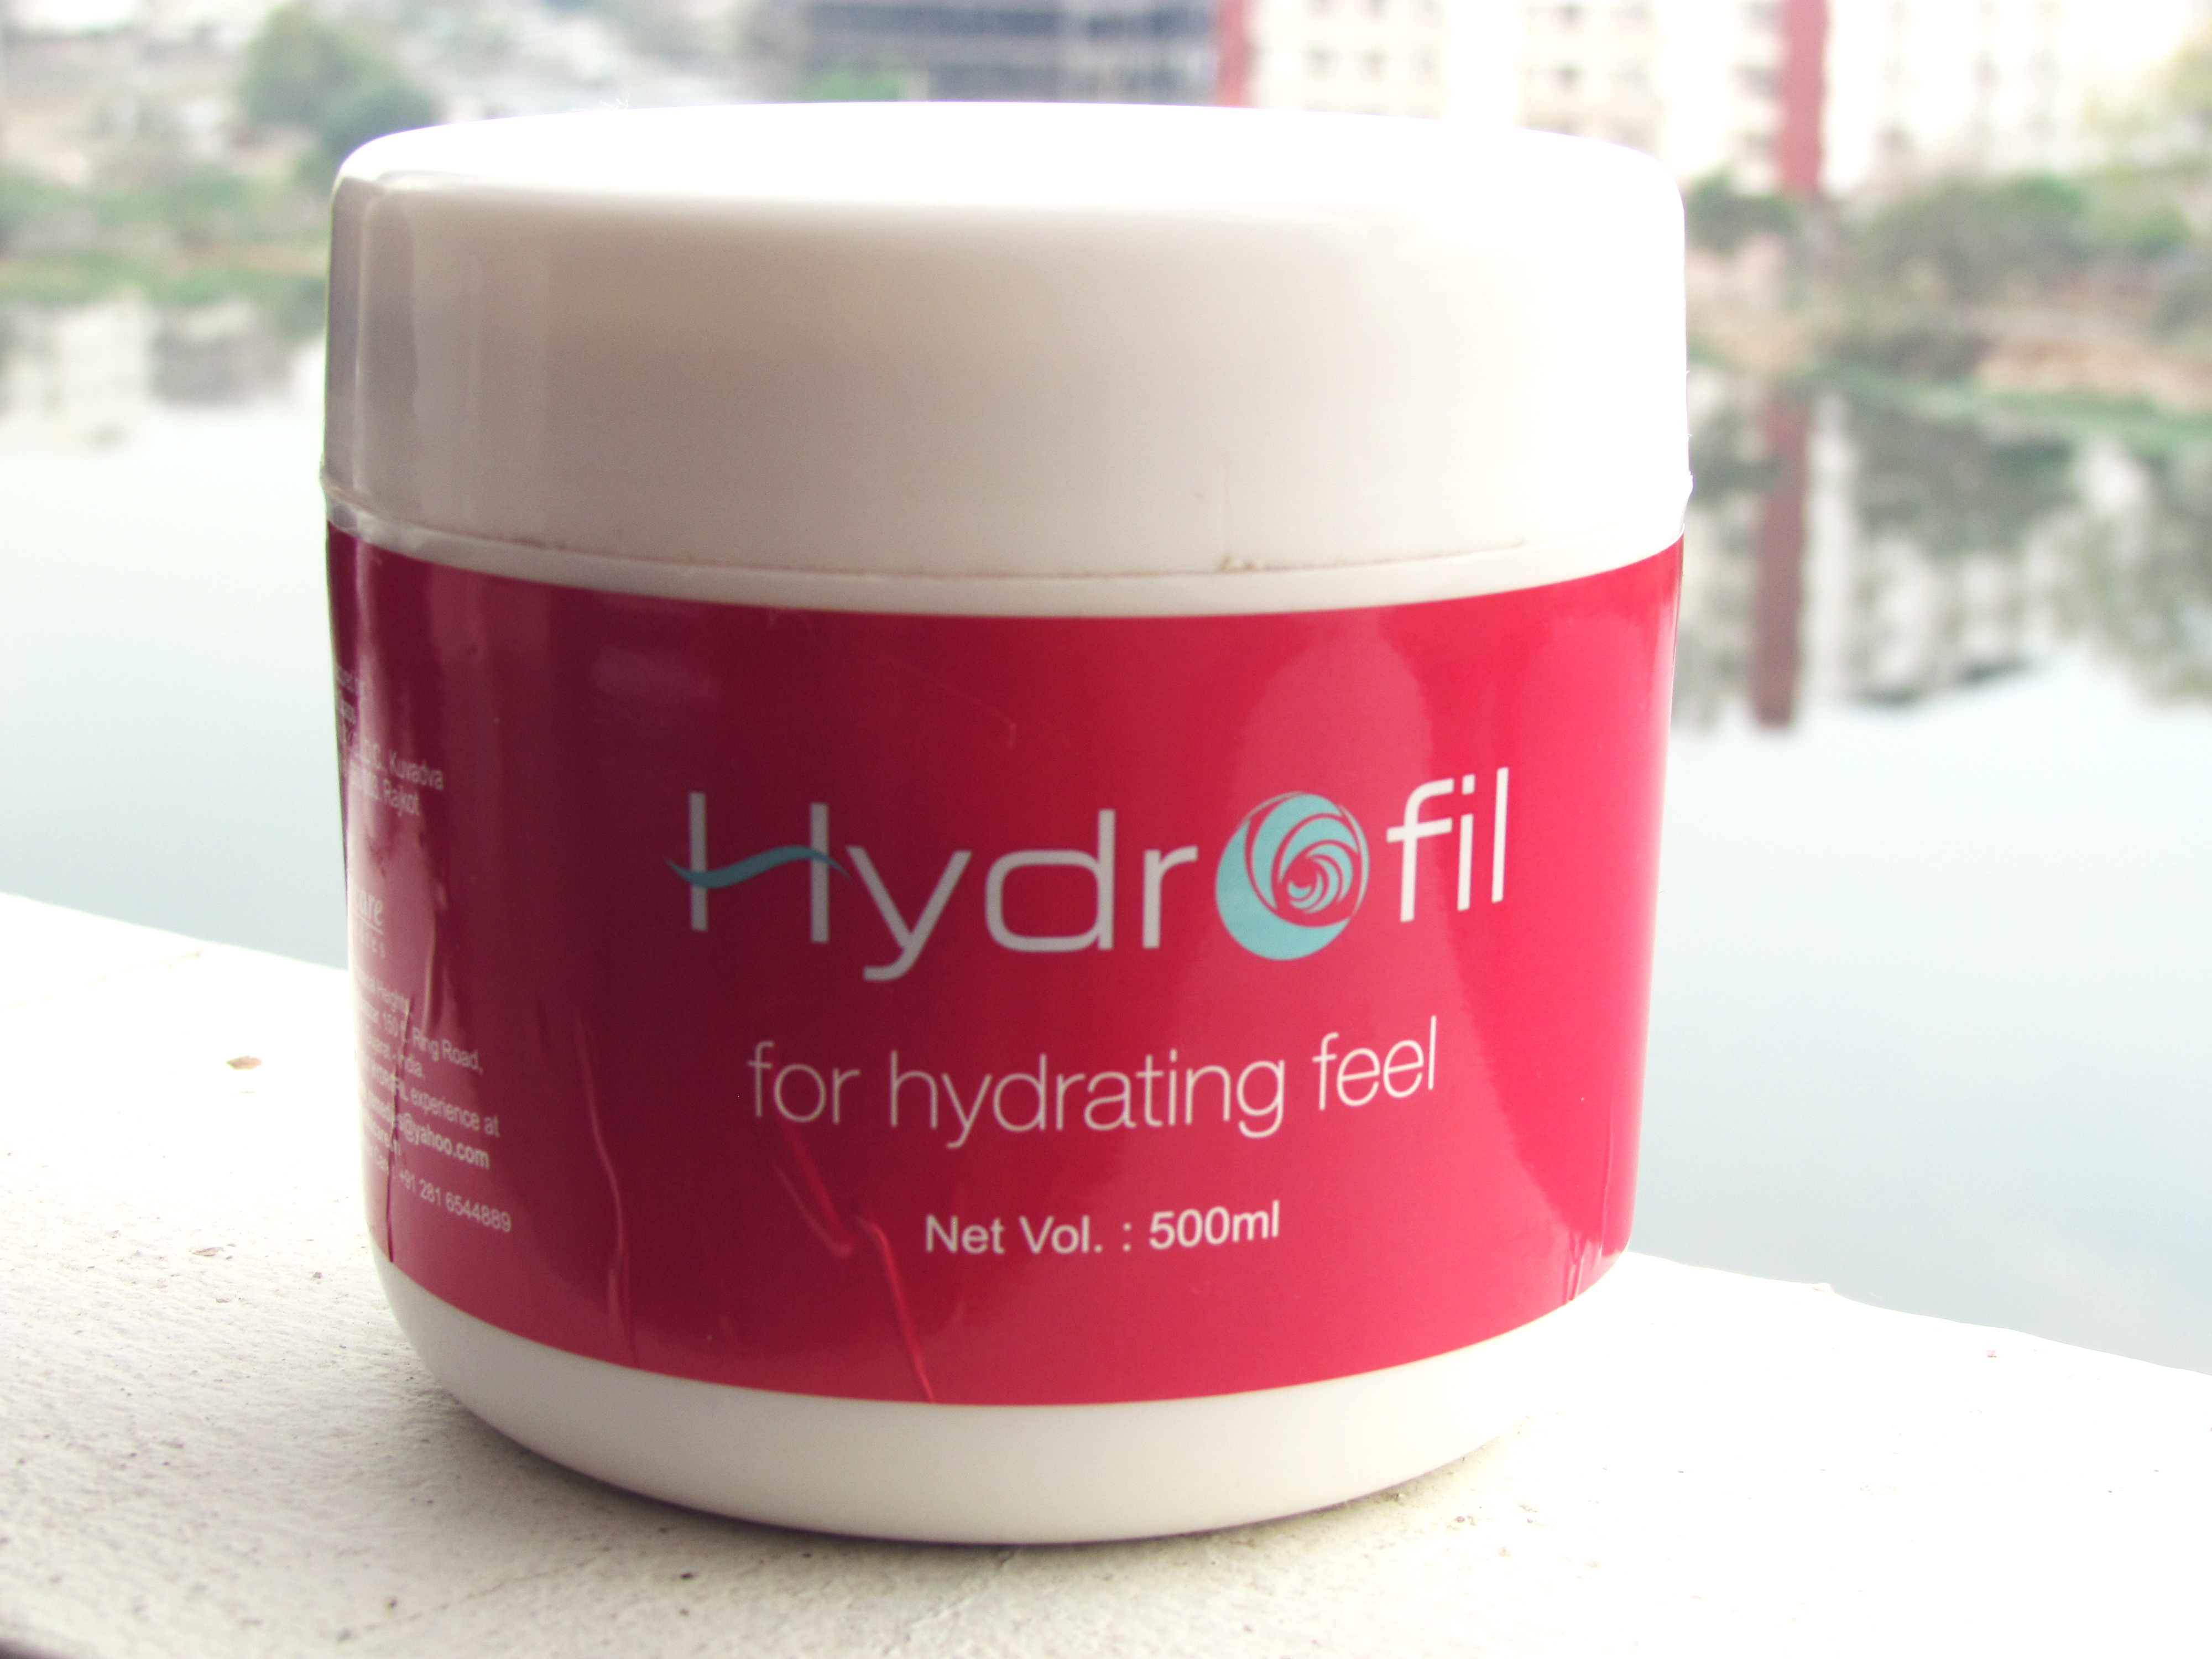 Ethicare Remedies – Hydrofil Cream Review